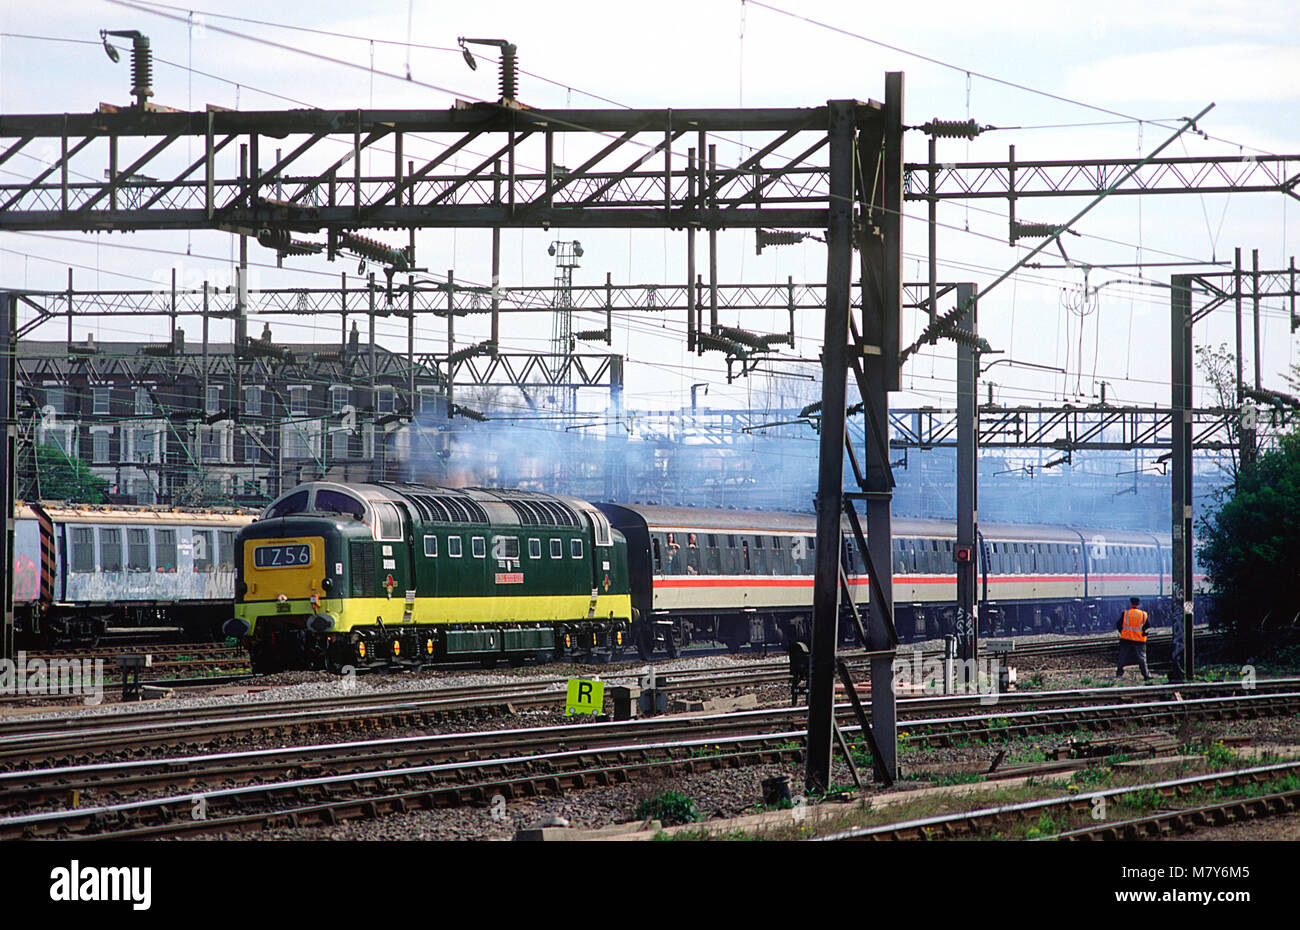 """A class 55 deltic diesel locomotive number 55022/D9000 """"Royal Scots Grey"""" working a enthusiast railtour at Willesden Stock Photo"""